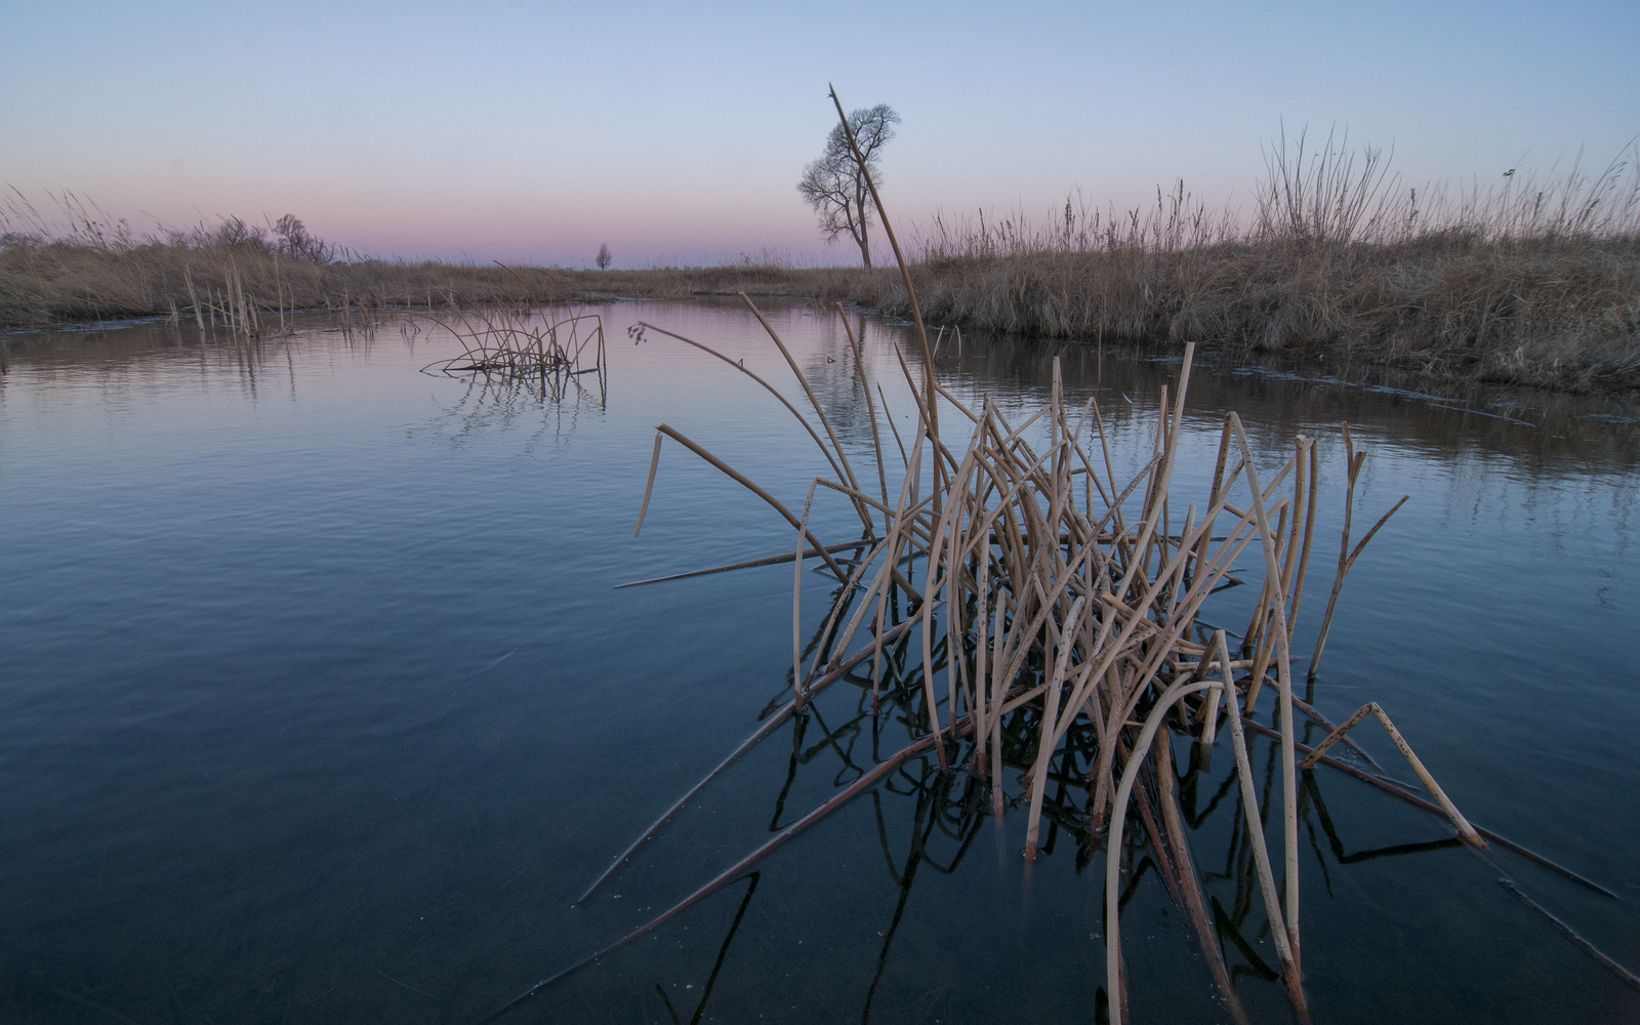 Brown grasses spot the surface of the Platte River as the dawn sky reflects pinks and yellow colors on its still shoreline.